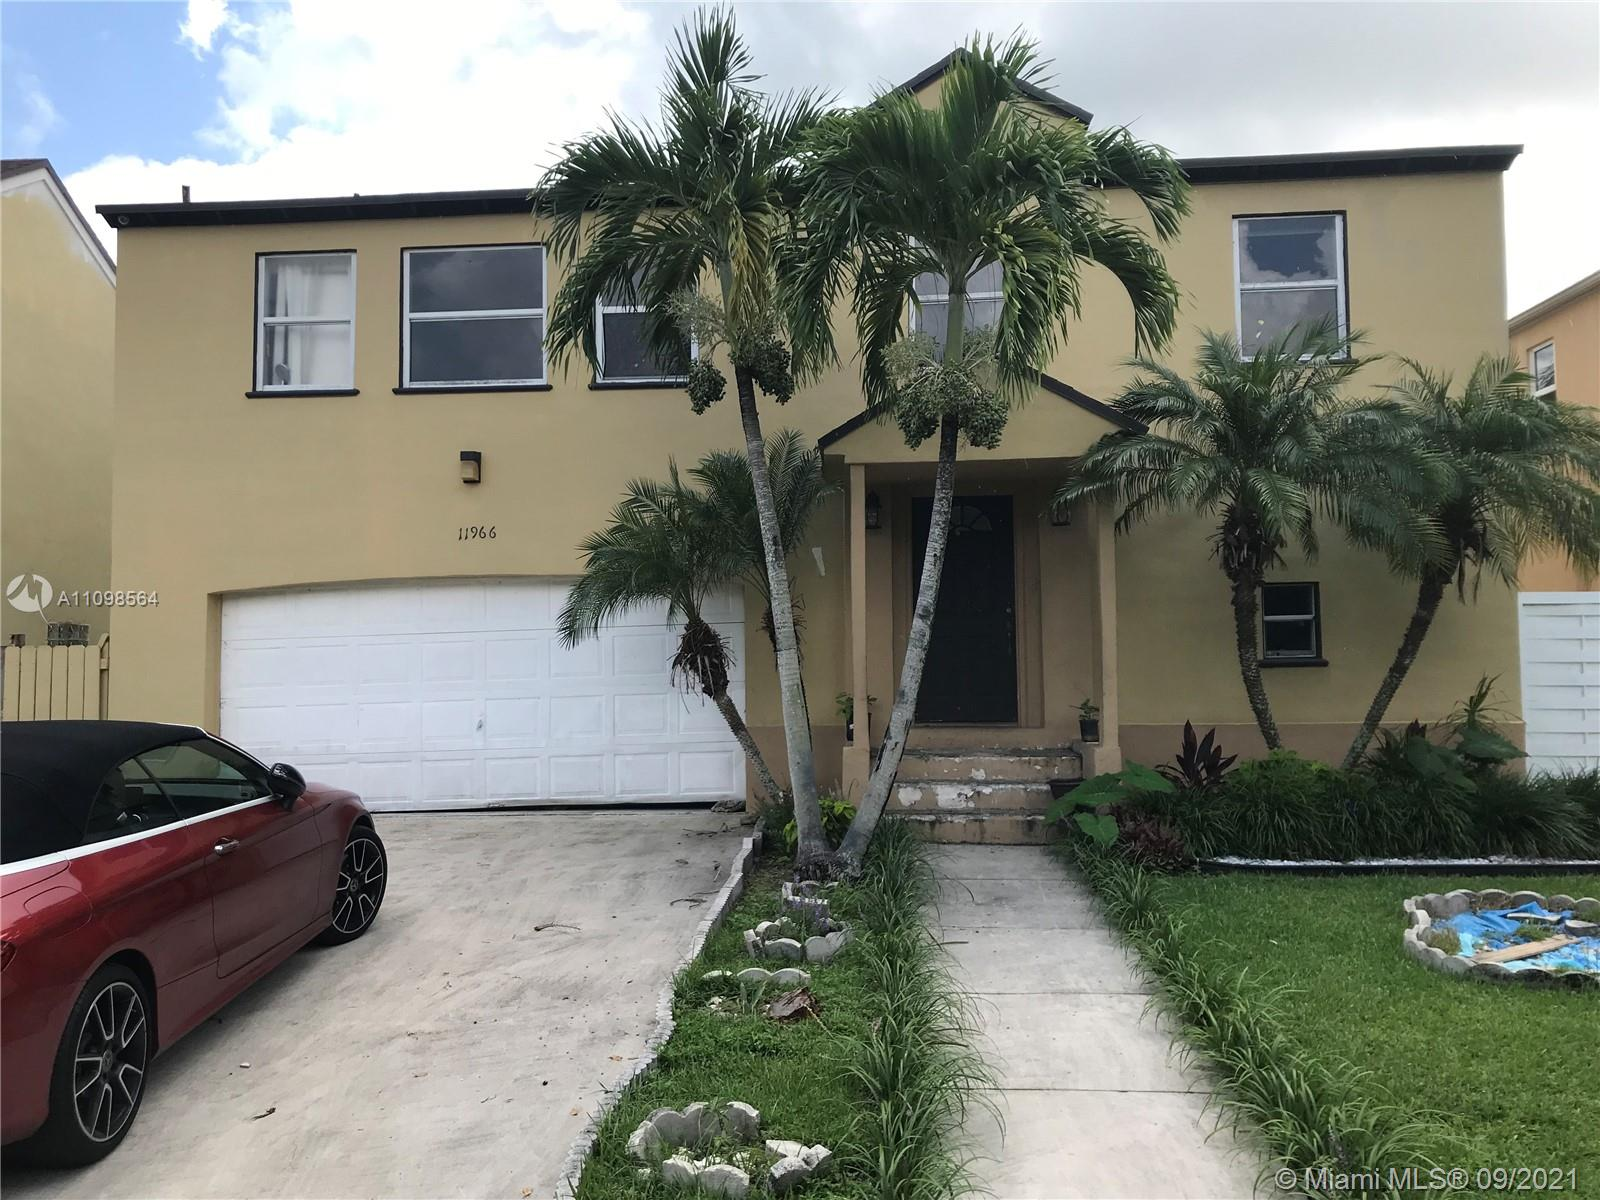 GREAT OPPORTUNITY TO MAKE THIS PROPERTY YOUR HOME.  THE PROPERTY NEEDS WORK.  SELLING SUBSTANTIALLY BELOW MARKET VALUE.  SOME WORK HAS BEEN COMPLETED.